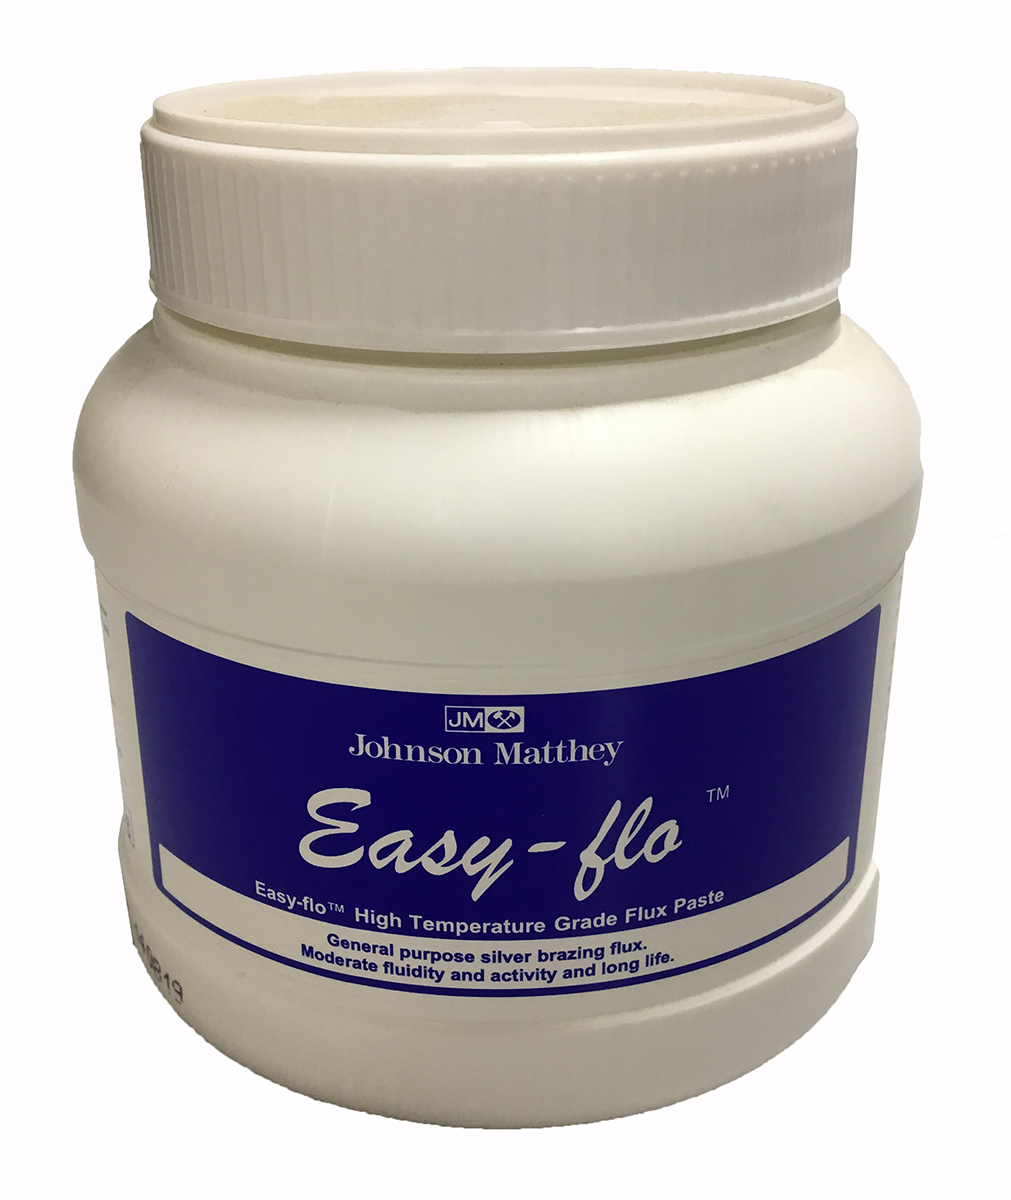 Johnson Matthey Easy-flo flux Paste